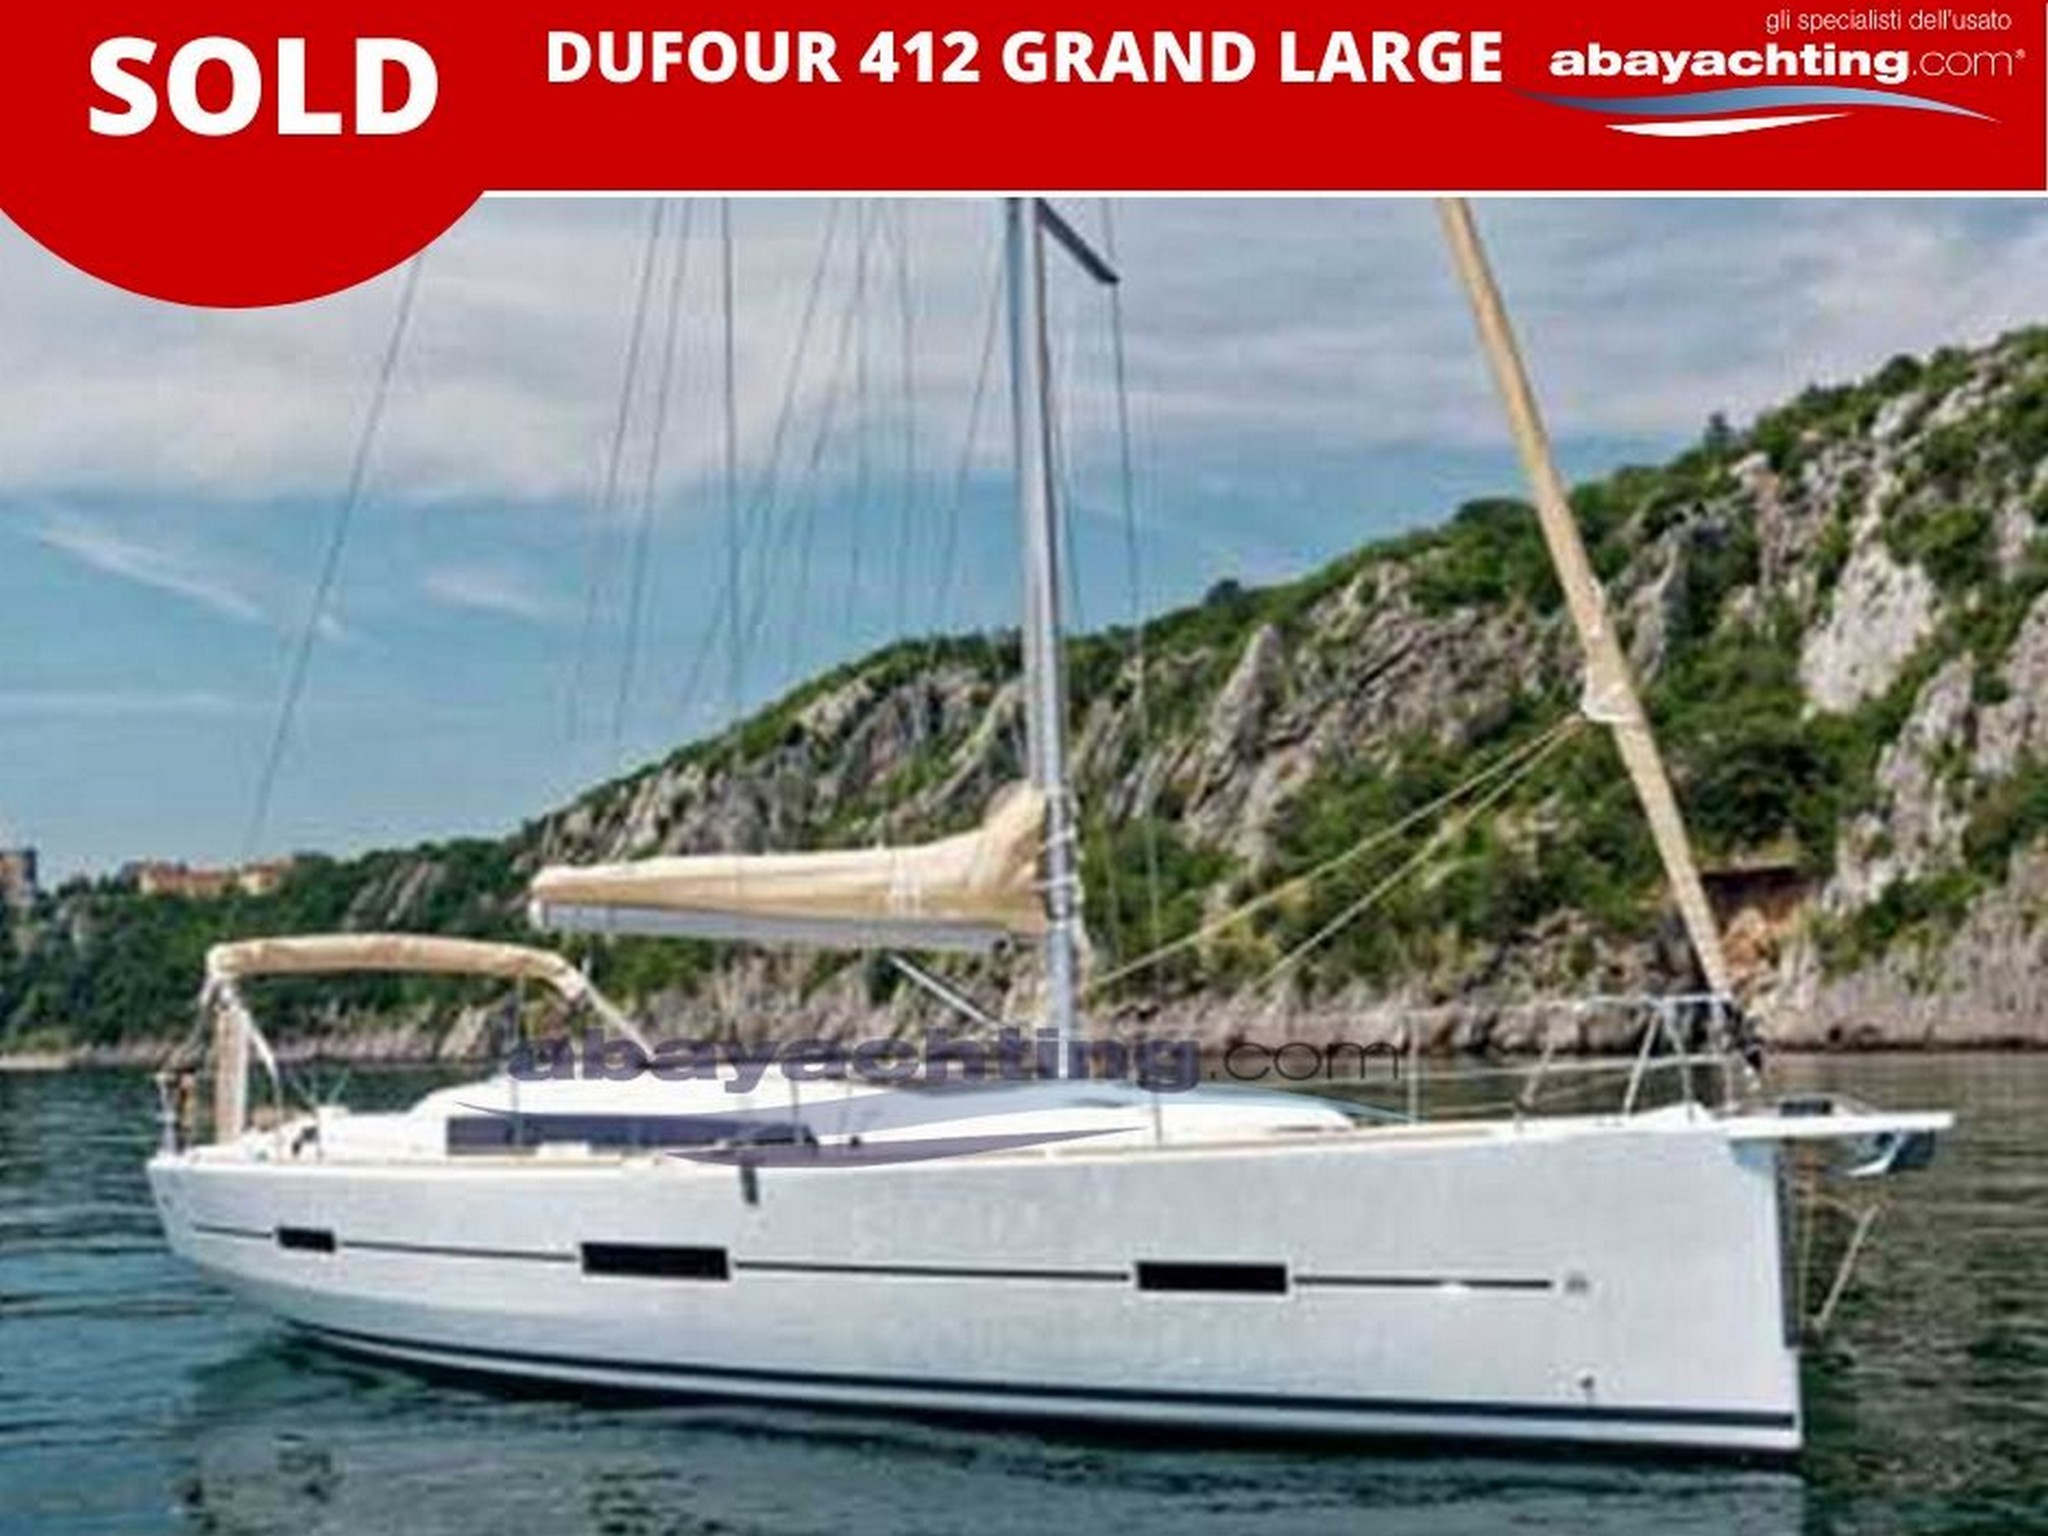 Dufour 412 Grand Large sold